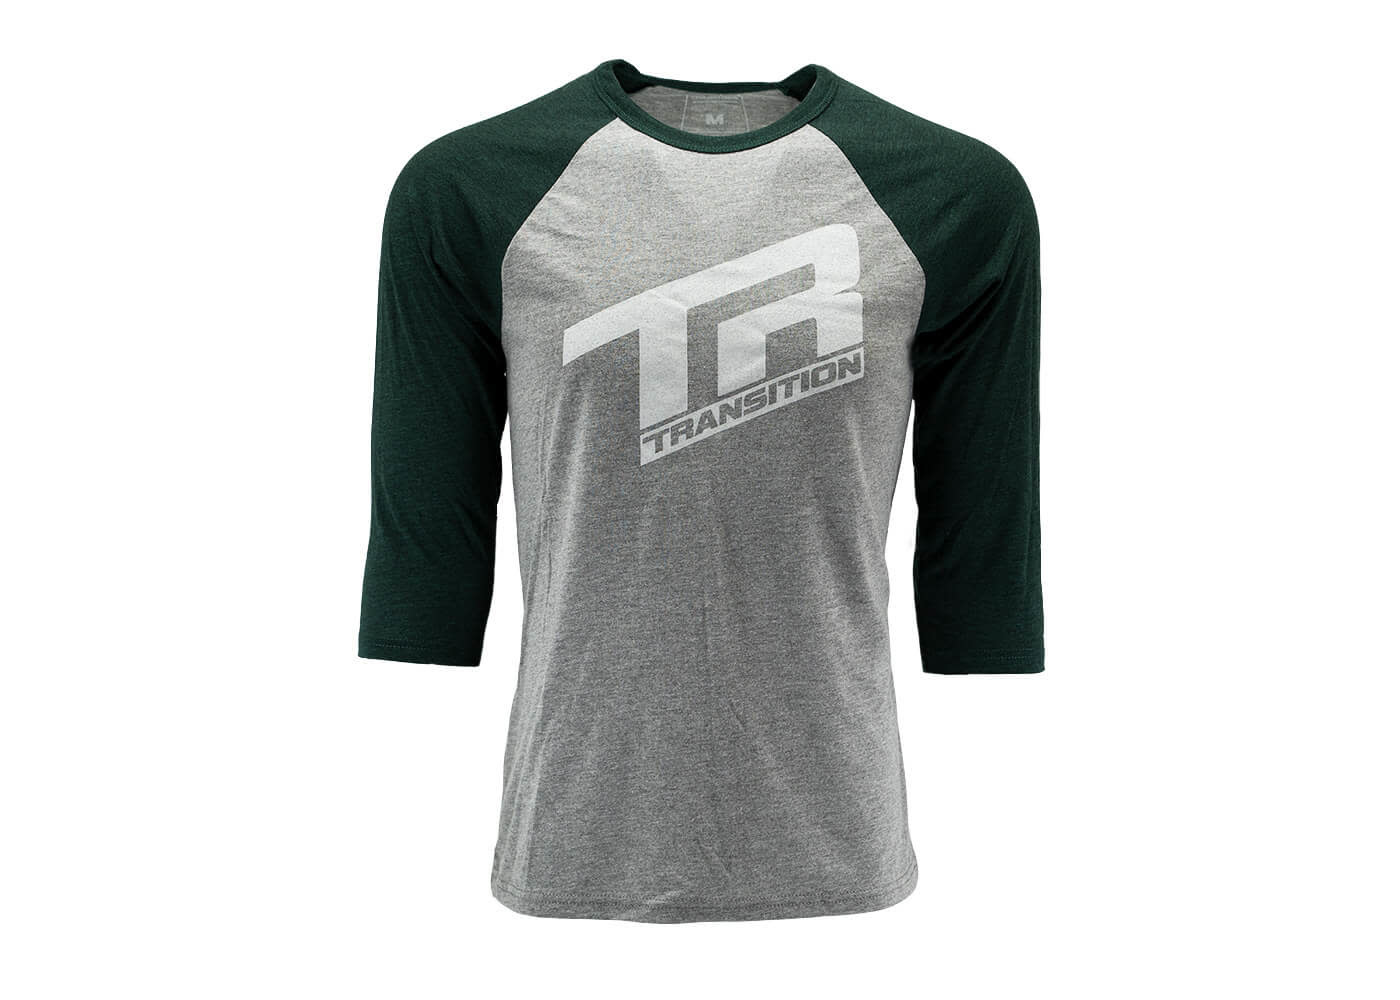 Transition TBC - 3/4 Sleeve Shirt: TR Logo (X-Large, Grey- Deep Sea Green)